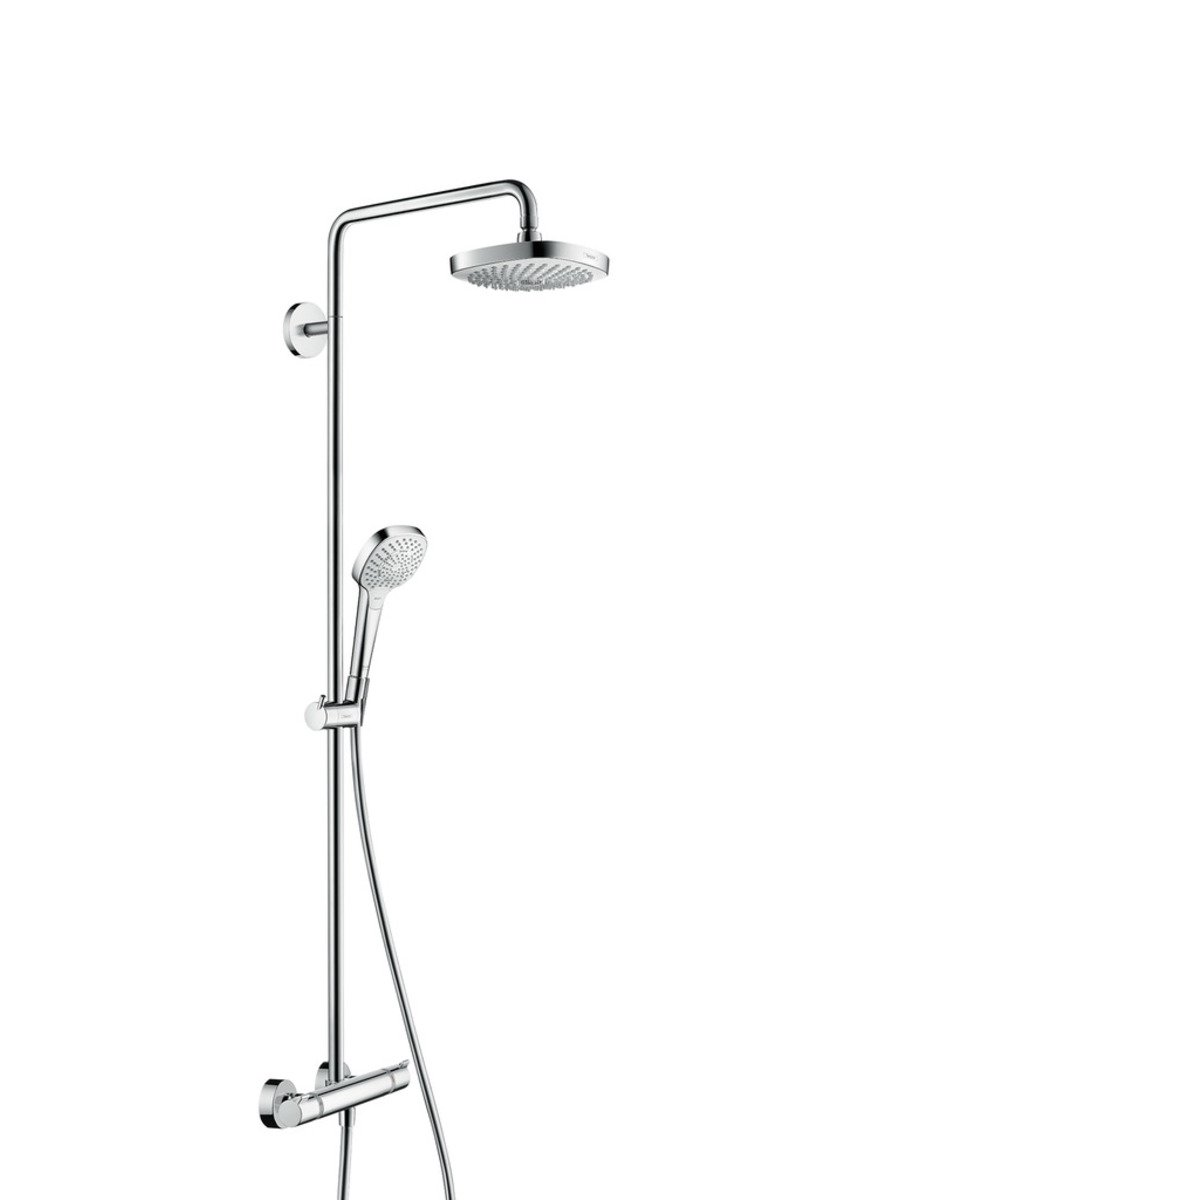 Hansgrohe Croma 2jet Hansgrohe Croma Select E 180 2jet Showerpipe Met Ecostat Comfort